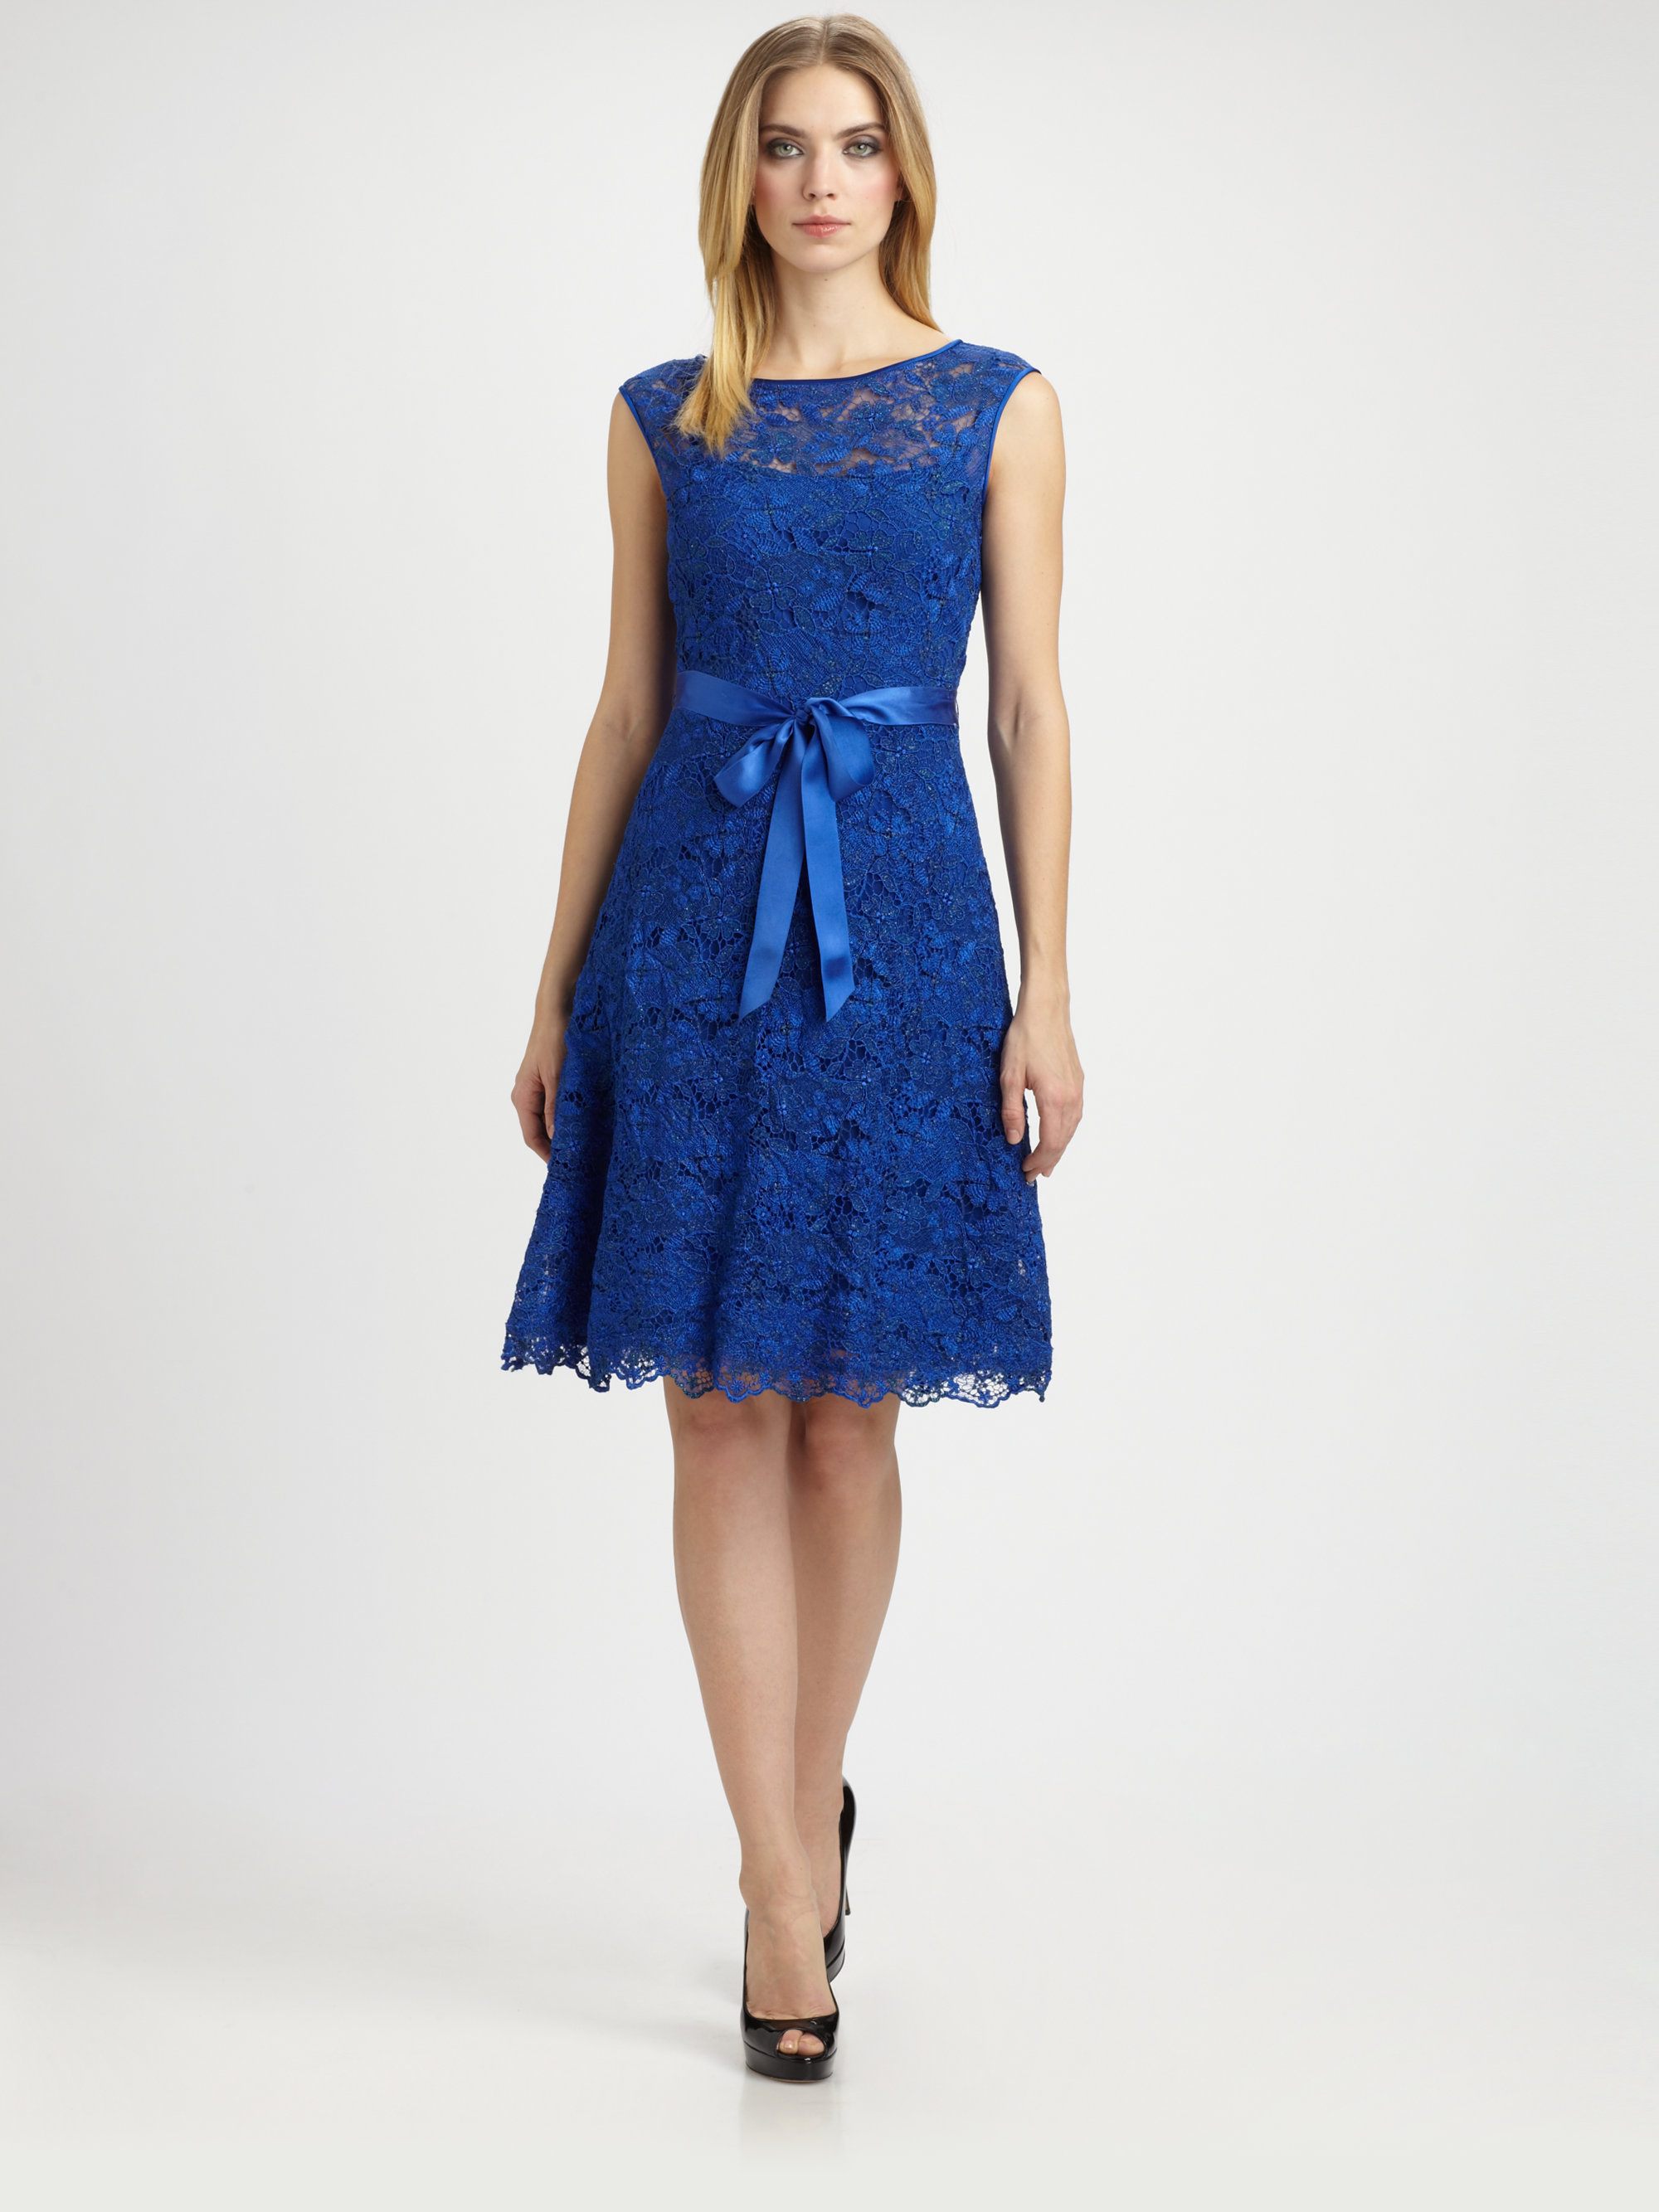 Shop the Rickie Freeman for Teri Jon collection at Neiman Marcus Last Call. Browse beautiful women's gowns, cocktail dresses and more.